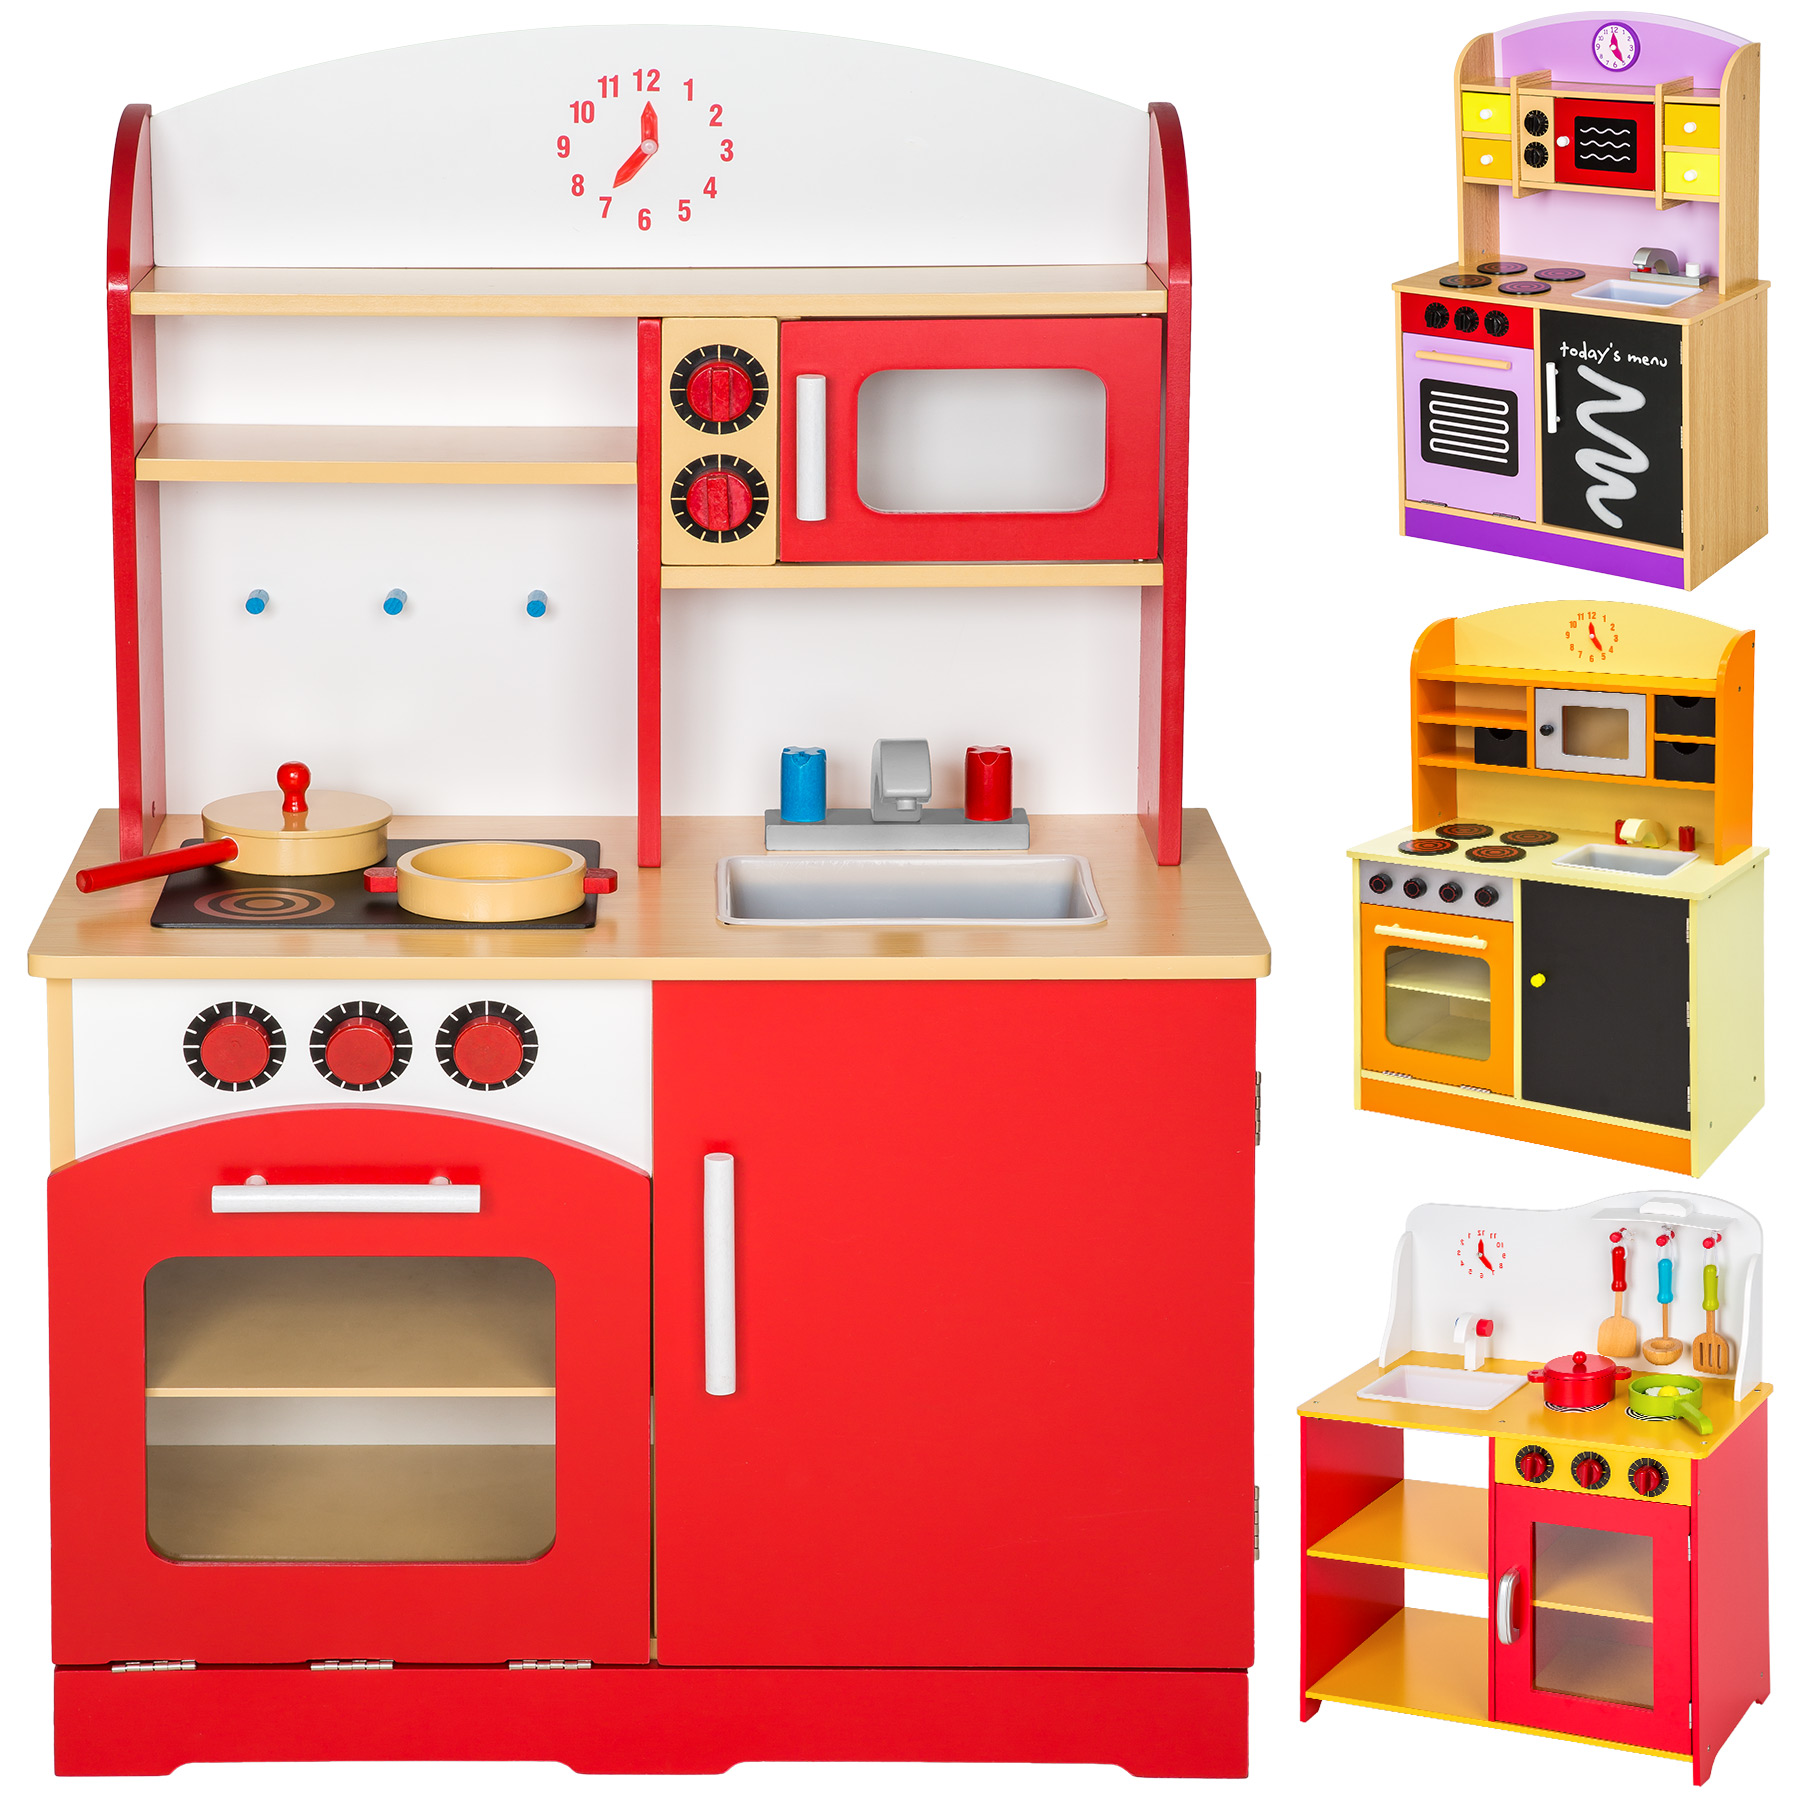 childrens wooden kitchen set  ebay - wooden childrens kids kitchen pretend role play cooking toys learner set new